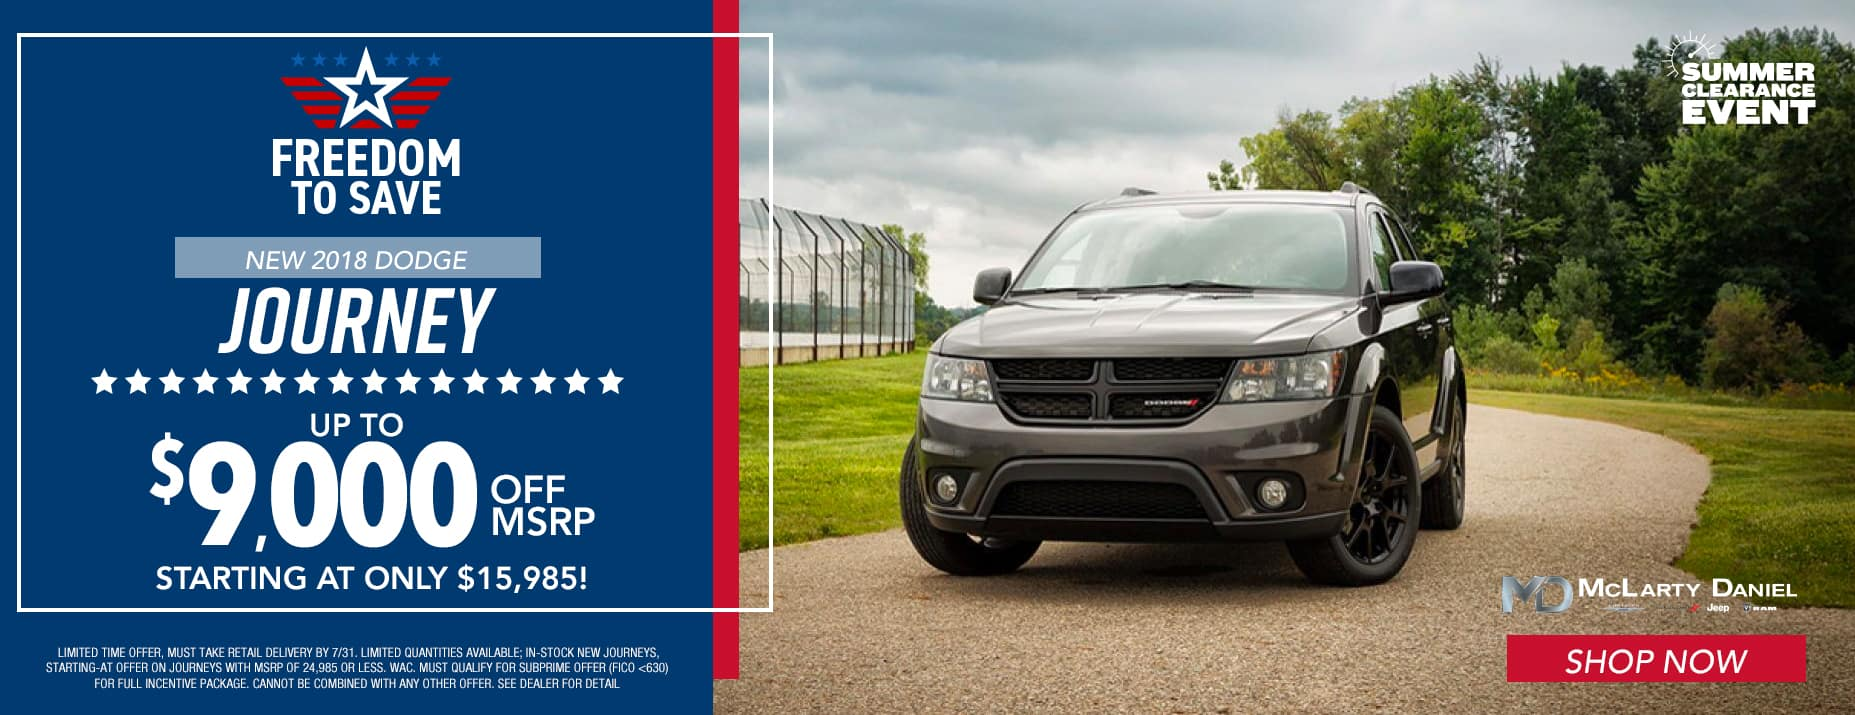 New 2018 Dodge Journey $9,000 Off MSRP